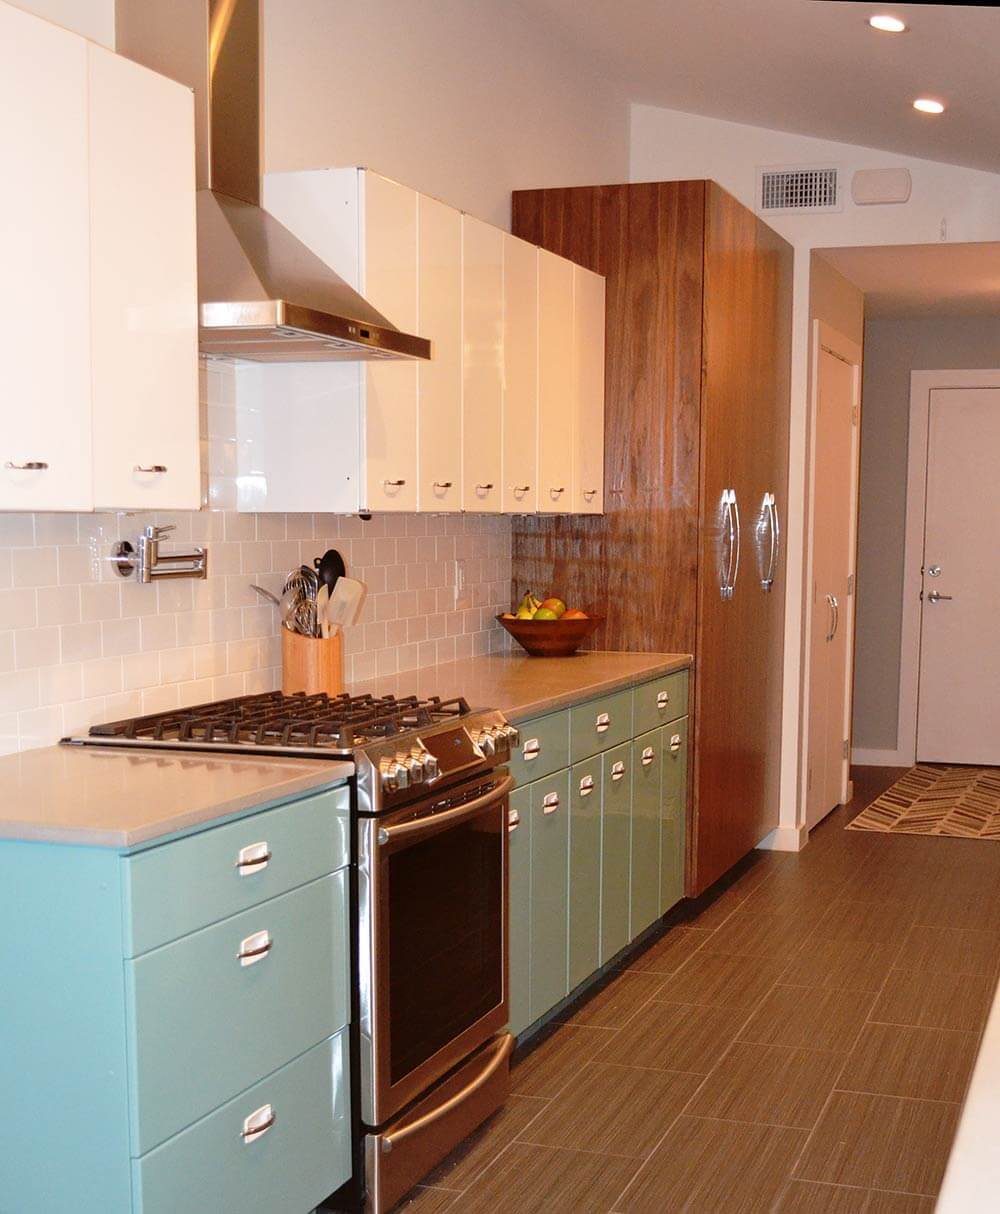 Kitchen Furniture | sam has a great experience with powder coating her vintage